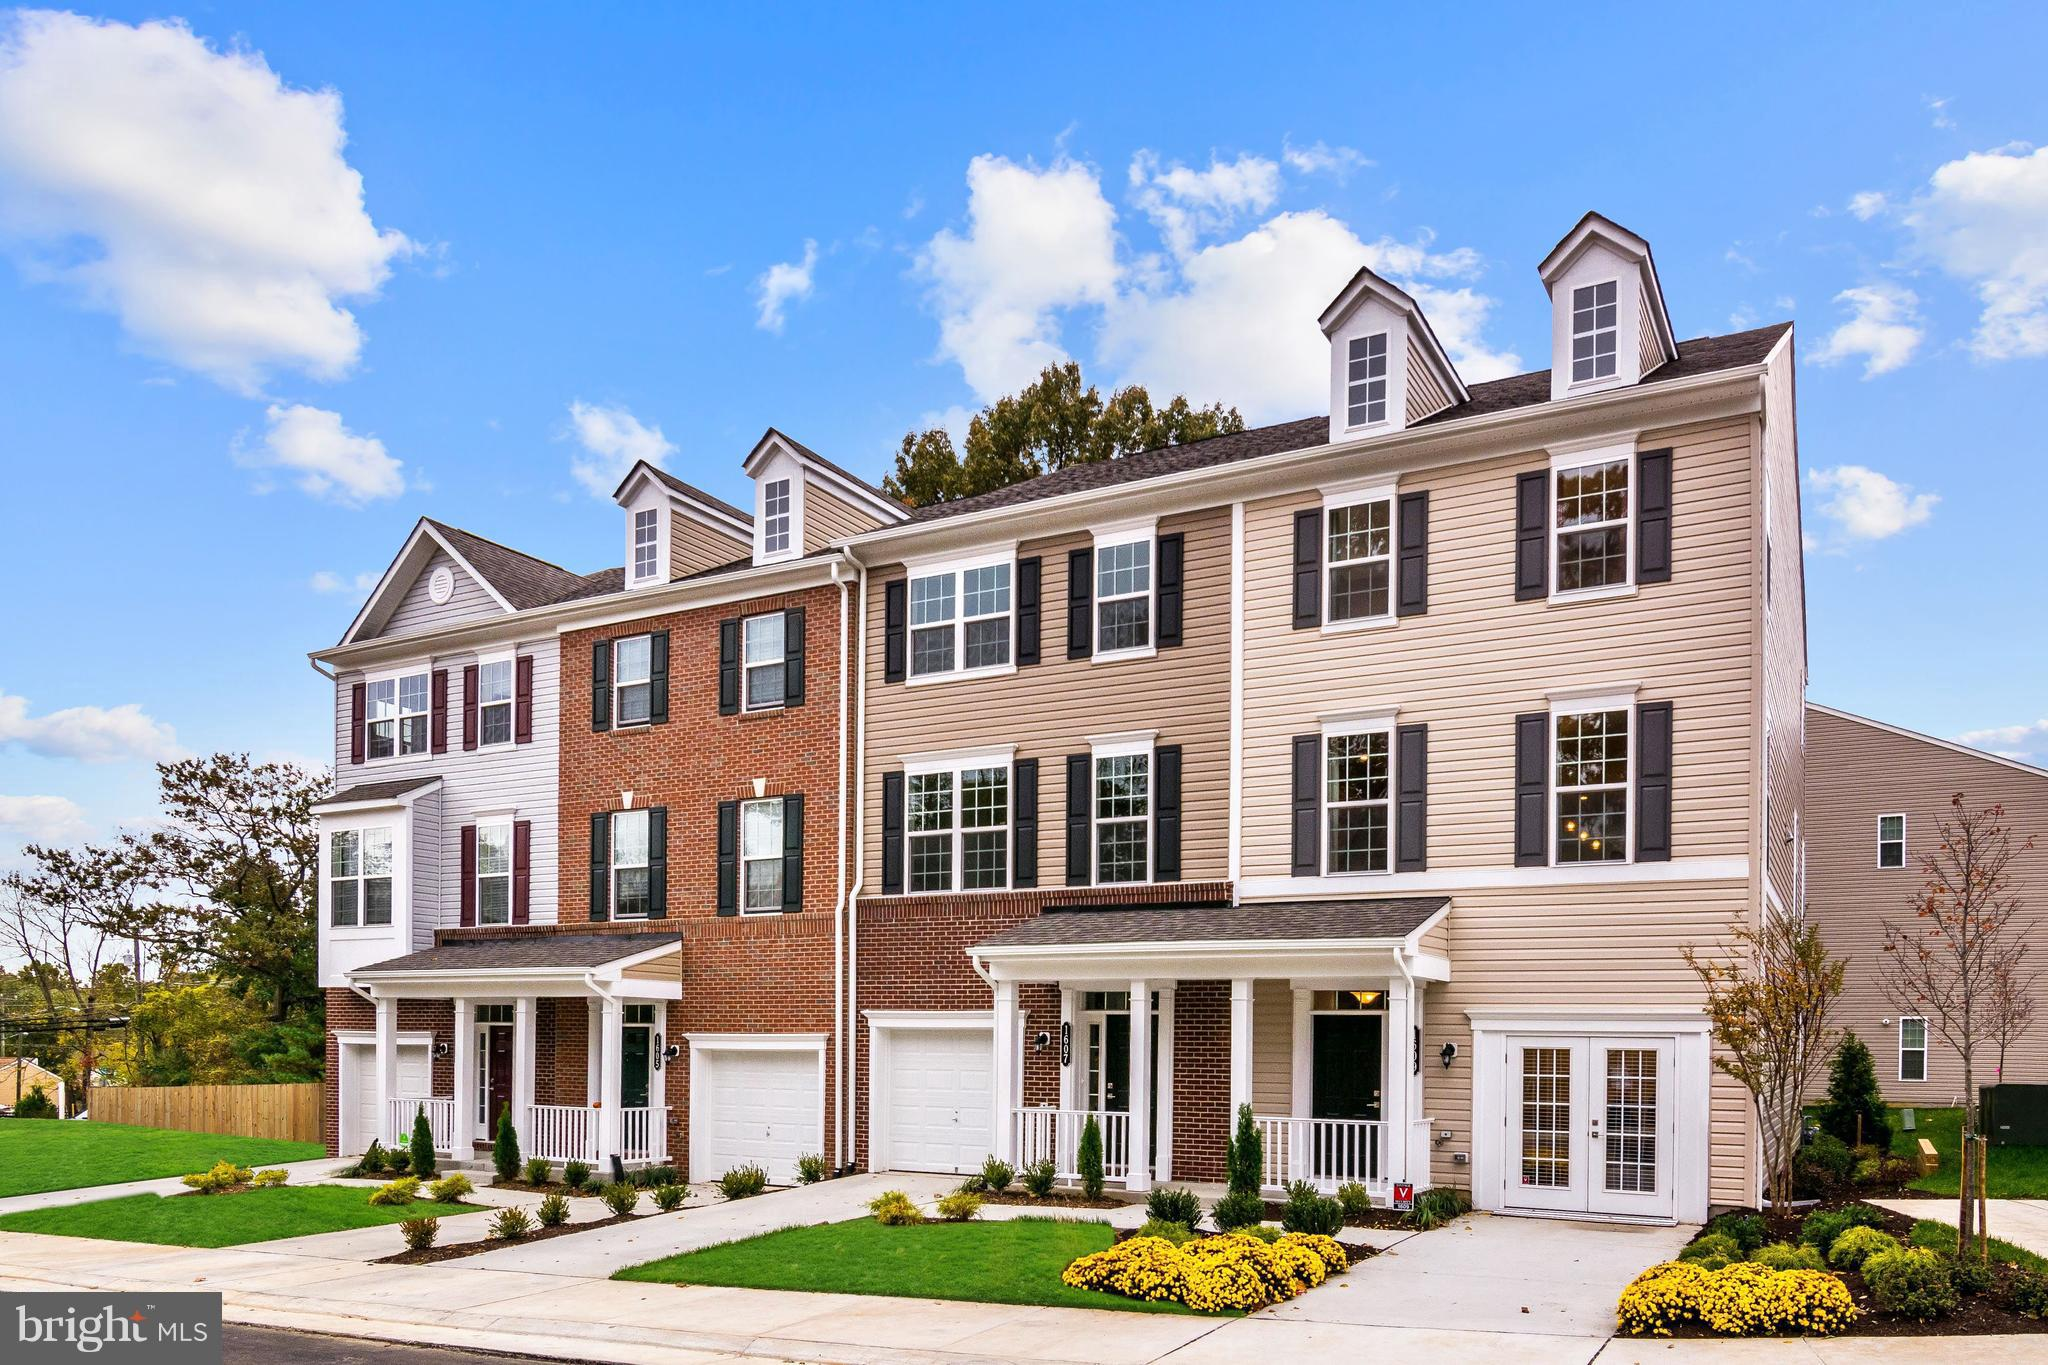 """BRAND NEW BEAZER TH STYLE CONDO W/ 1 CAR GARAGE! BACKS TO TREES. FEB/MAR DELIVERY. 2 MASTER BEDROOMS. KIT W/ LUNA PEARL GRANITE COUNTERTOPS AND NUTMEG KITCHEN CABINETS. SS APPLIANCES. 3"""" ENGINEERED OAK WOOL FLOORS ON MAIN FLOOR. 5 MINS AWAY FROM VRE! $10K IN CLOSING COSTS! PRICES/TERMS/AVAILABILITY SUBJ TO CHANGE"""